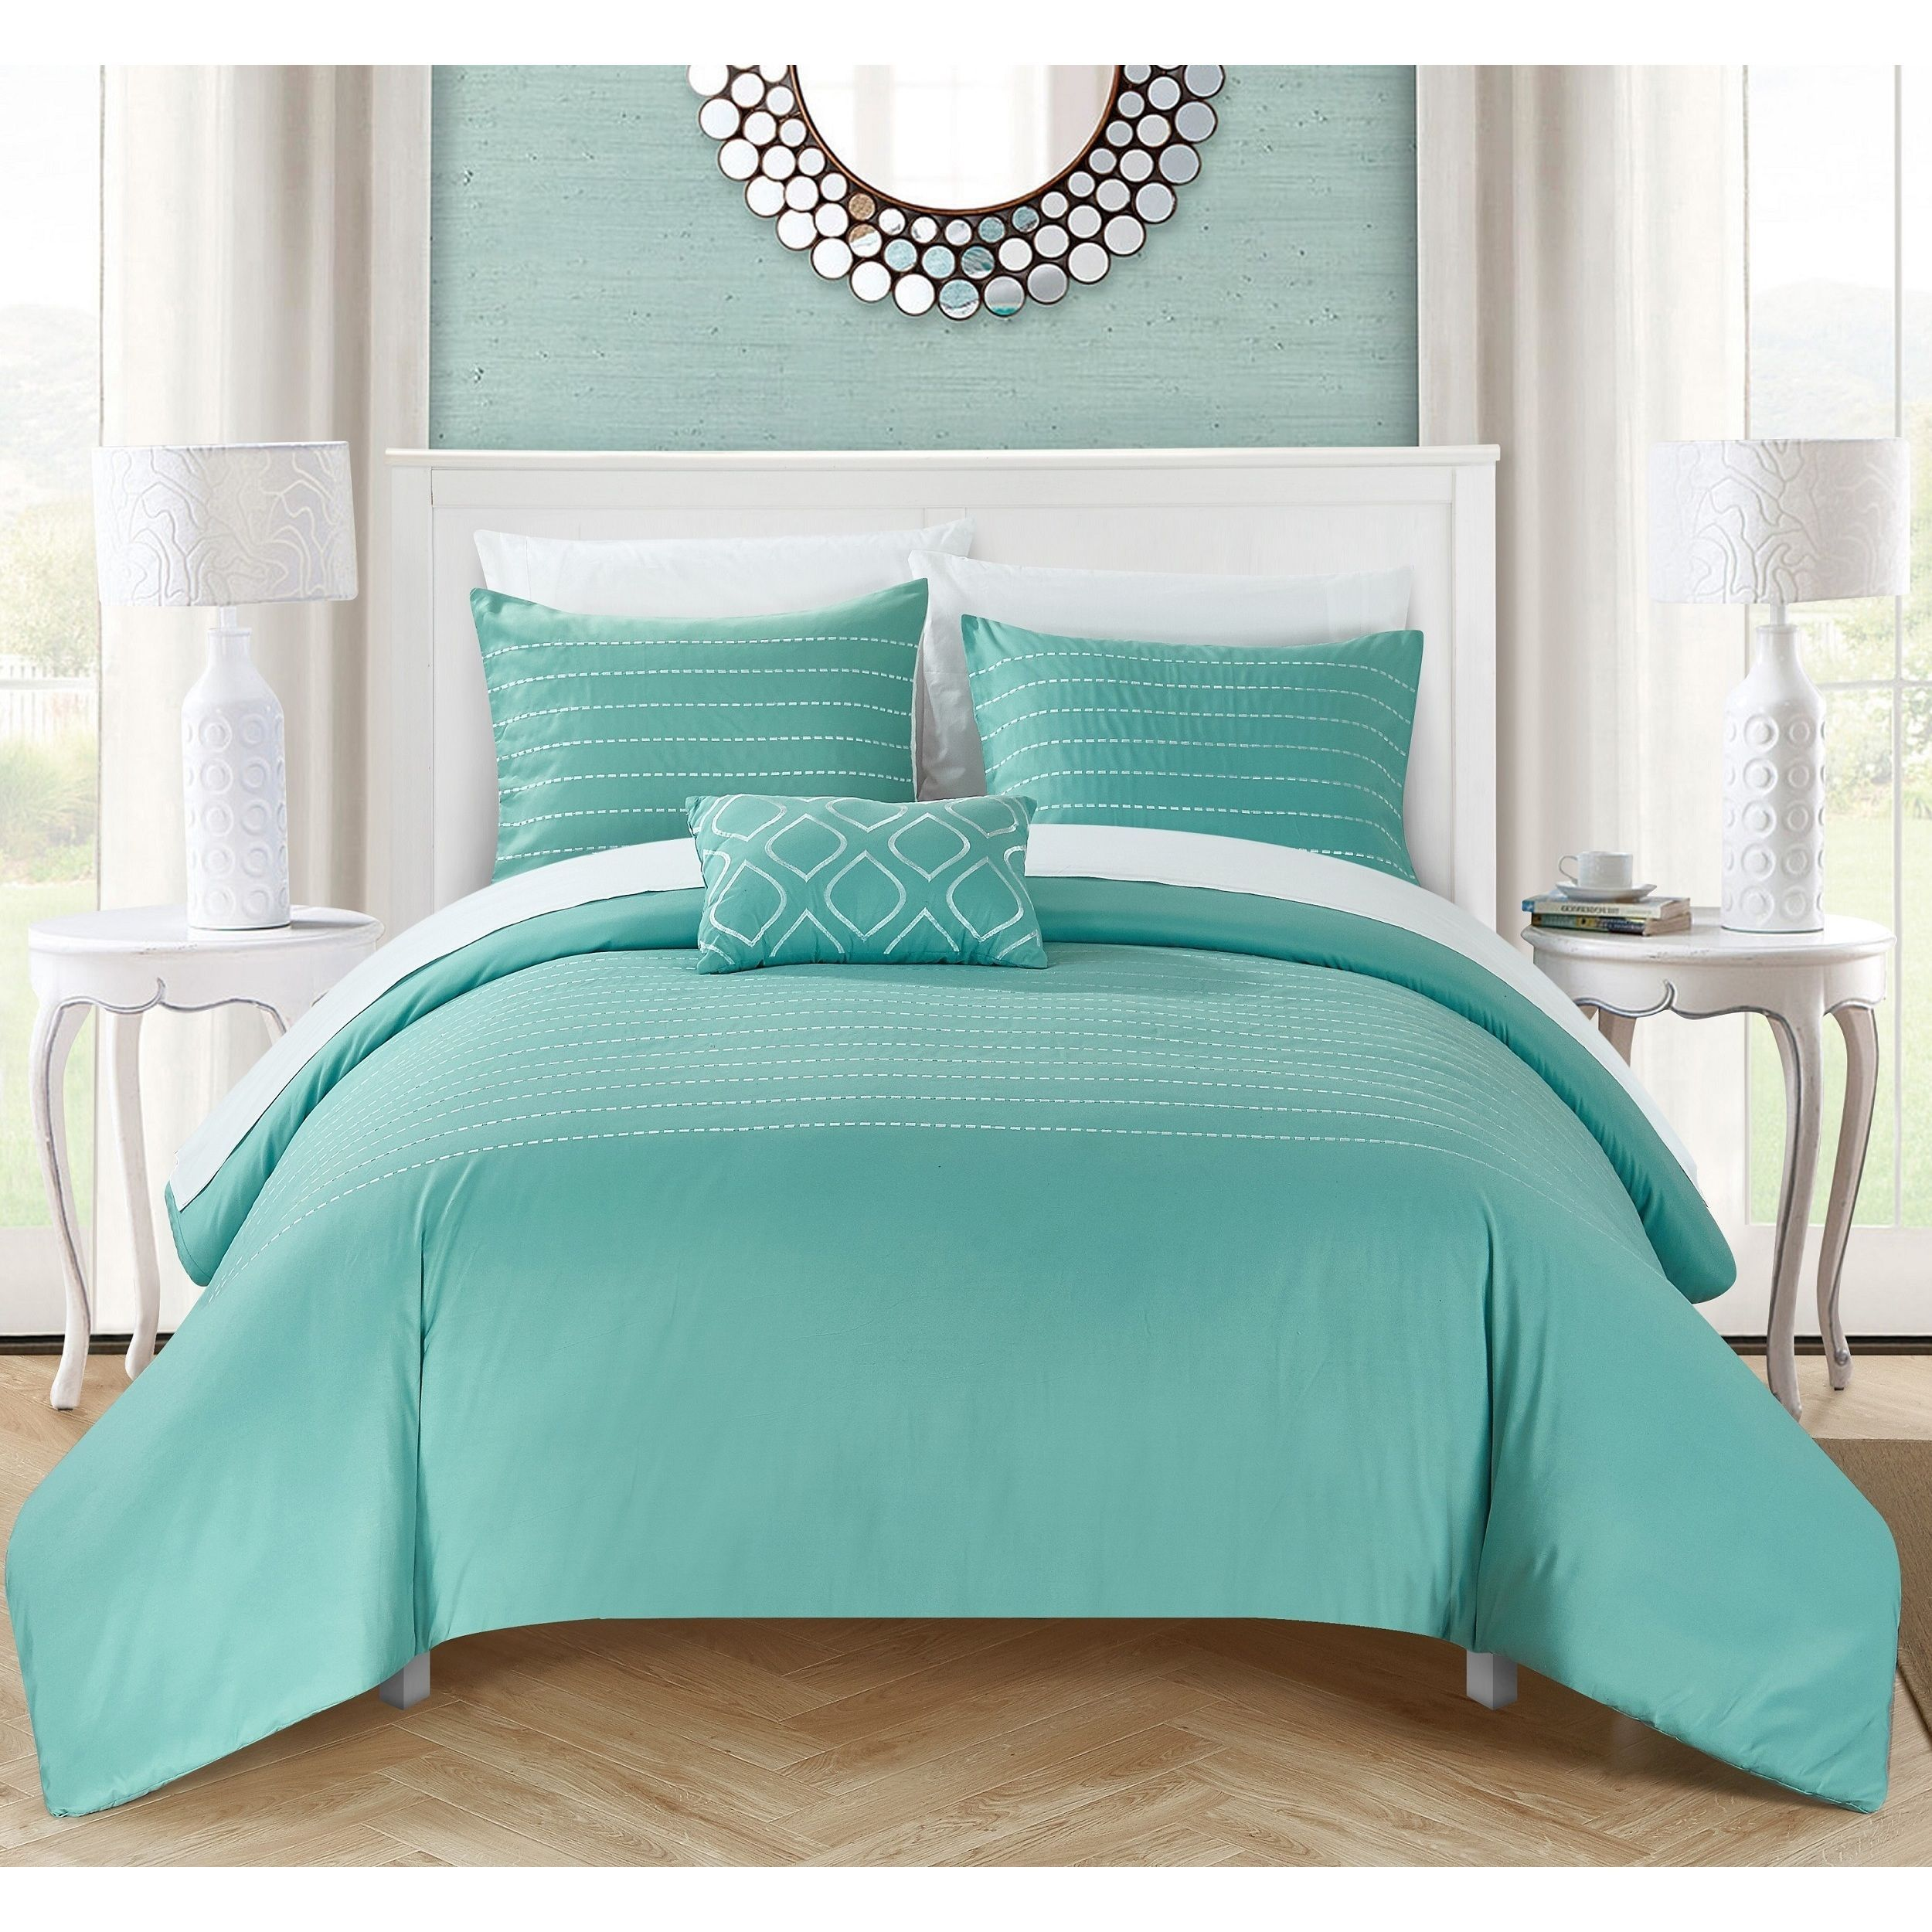 Chic Home Kingston 8 Piece Turquoise Bed In A Bag Duvet Set By Chic Home